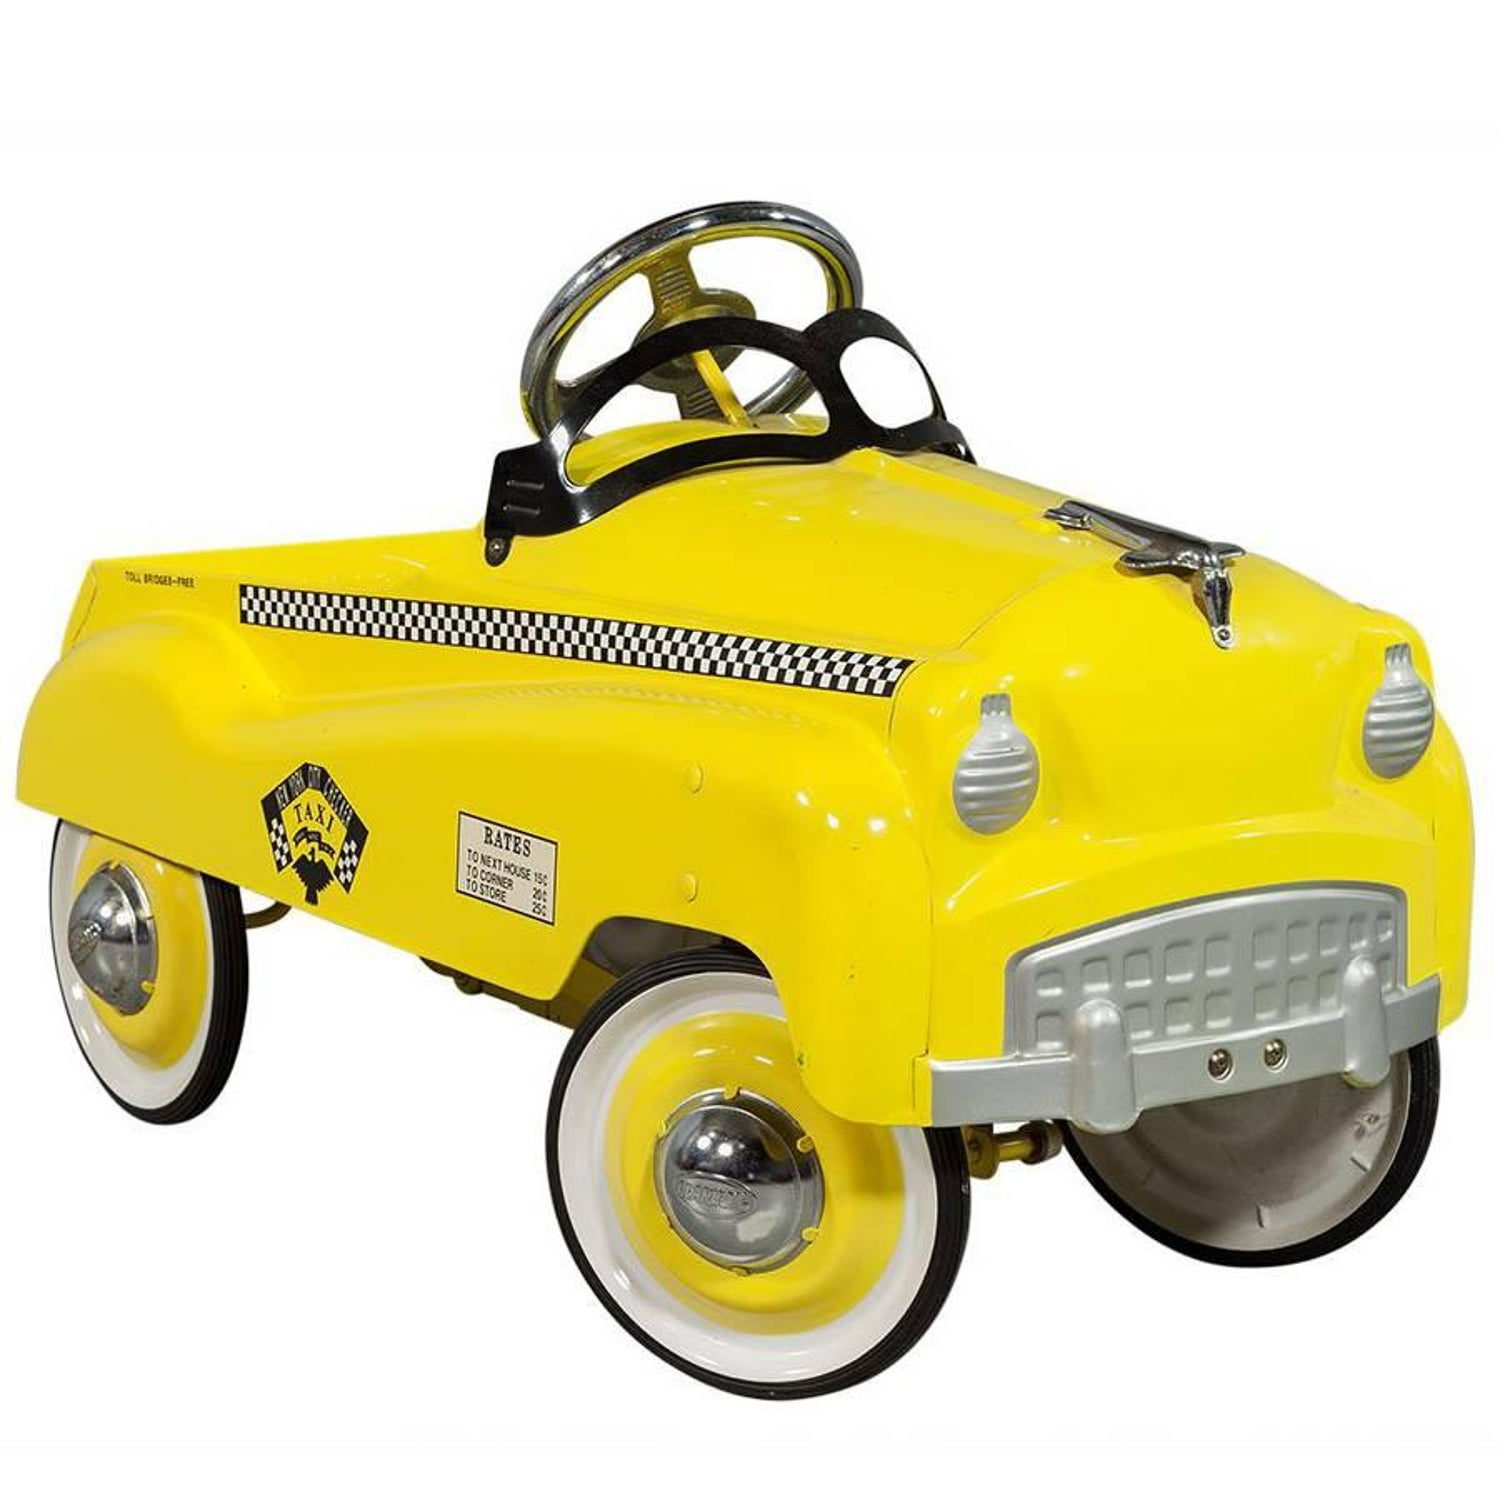 Antique and Vintage Toy Cars - 81 For Sale on 1stdibs